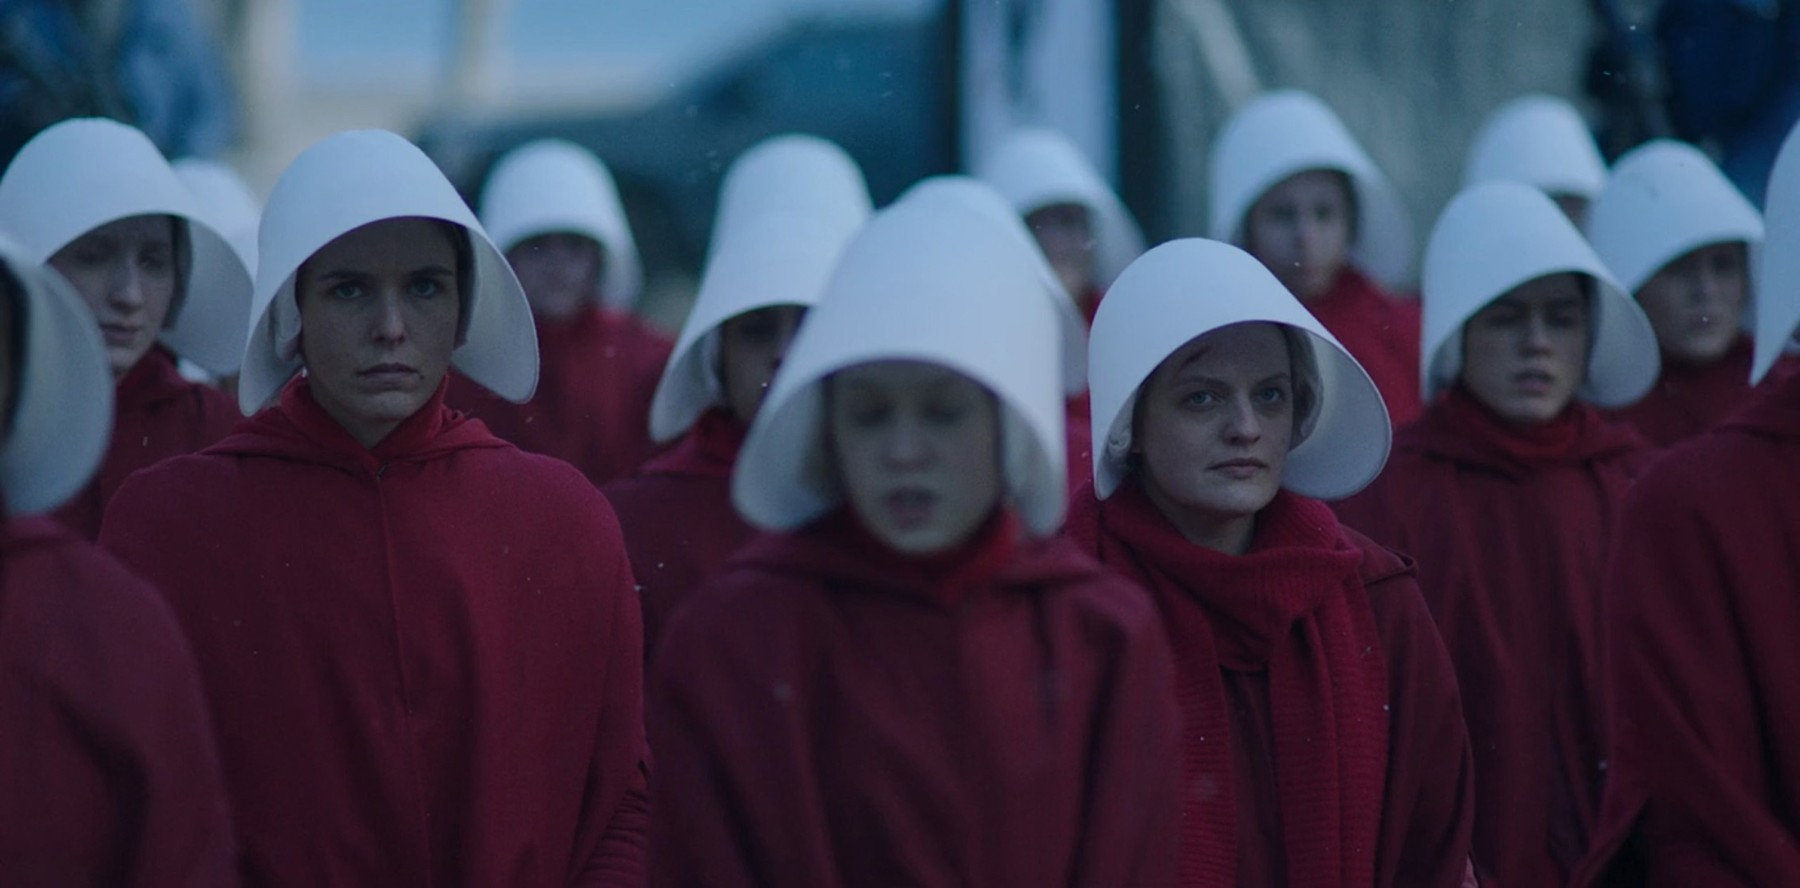 Los Angeles.CA.USA. Elisabeth Moss  in ©HULU TV series, The Handmaid's Tale  (TV) (2017) S1E10 Creator:Bruce Miller Source:Margaret Atwood's novel with the same title Plot:Set in the near future, a fundamentalist Christian state of Gilead has created a biblical law version of the former USA. Women's rights have been removed by the the new patriarchy. Some have been selected to breed new warriors to defend the state, the handmaidens as the fertility rates have fallen dramatically due to pollution., Image: 341504662, License: Rights-managed, Restrictions: Supplied by Landmark Media. Editorial Only. Landmark Media is not the copyright owner of these Film or TV stills but provides a service only for recognised Media outlets., Model Release: no, Credit line: Profimedia, Landmark